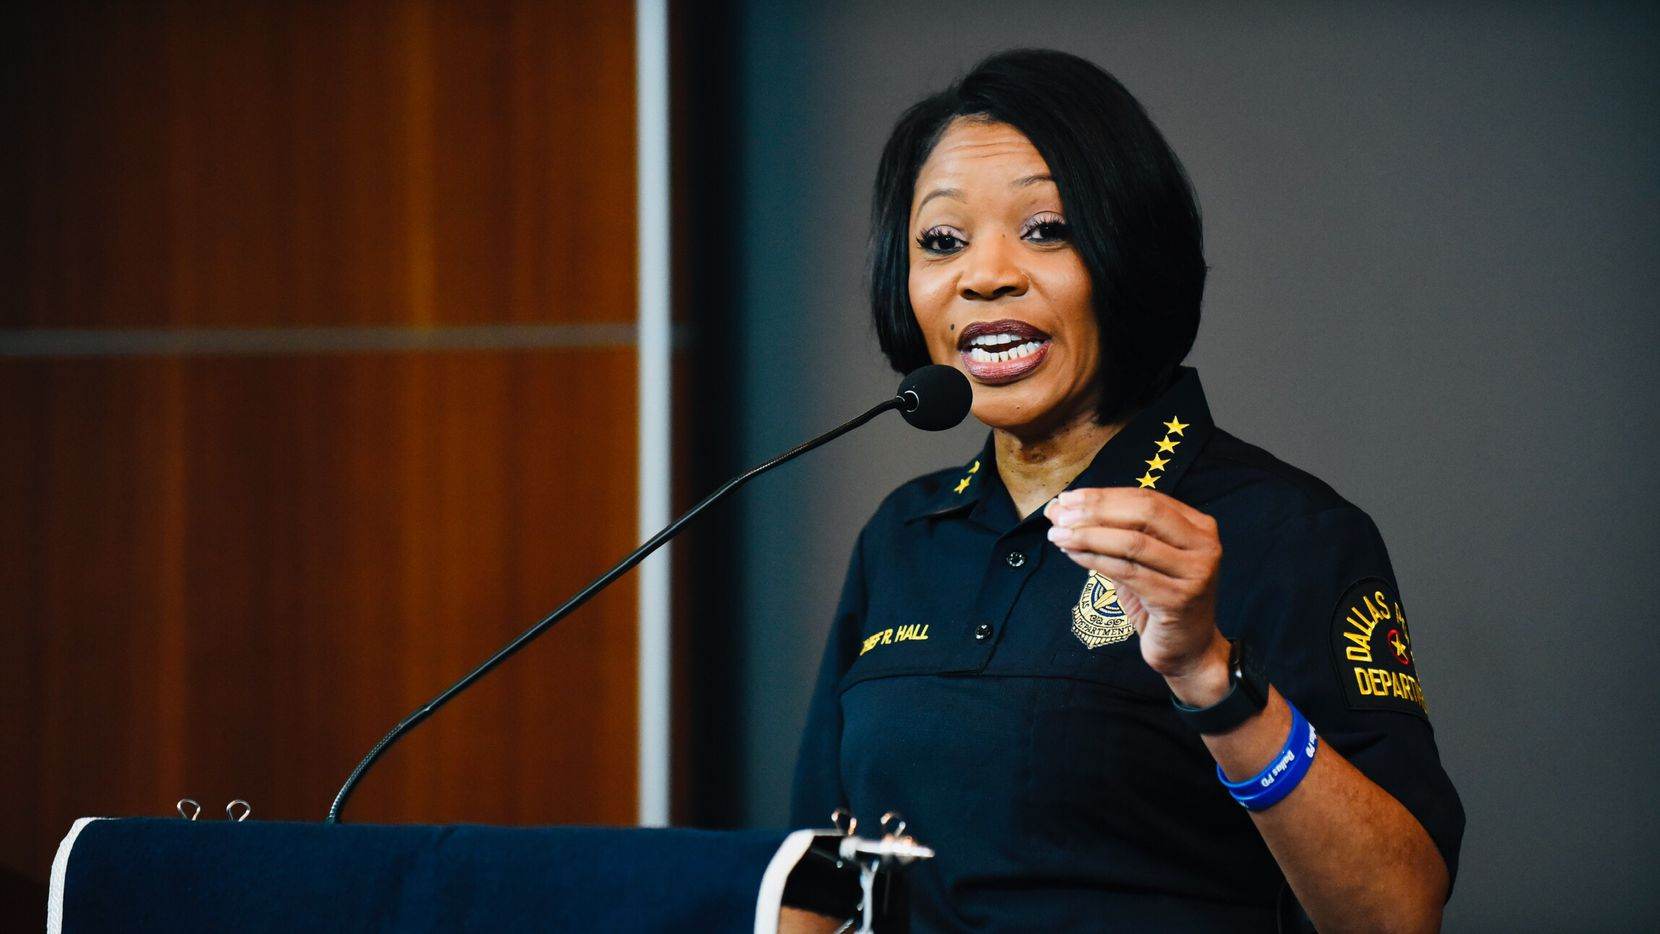 Dallas Police Chief Renee Hall conducts a press conference at Dallas Police headquarters about DPD starting to use a curfew to combat the recent protests for the death of George Floyd, Sunday. May 31, 2020.